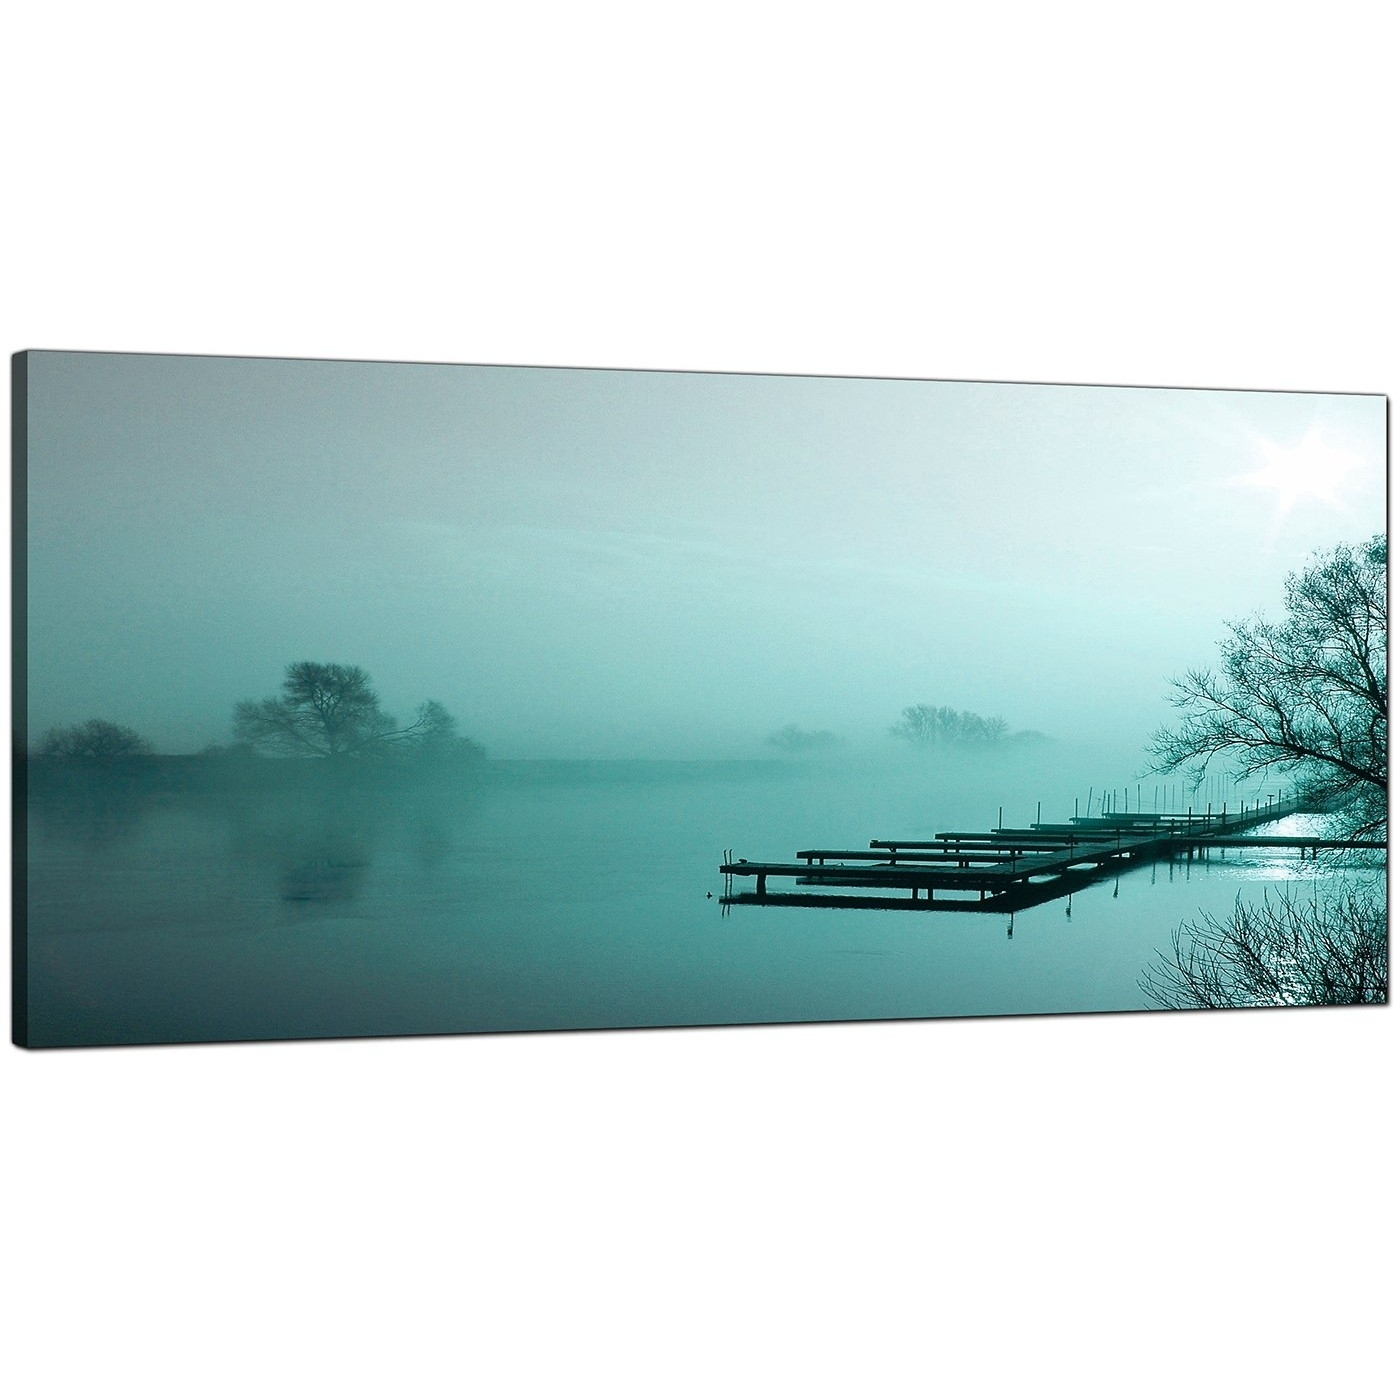 Large Teal Canvas Art Of A River Landscape with Teal Wall Art (Image 9 of 20)